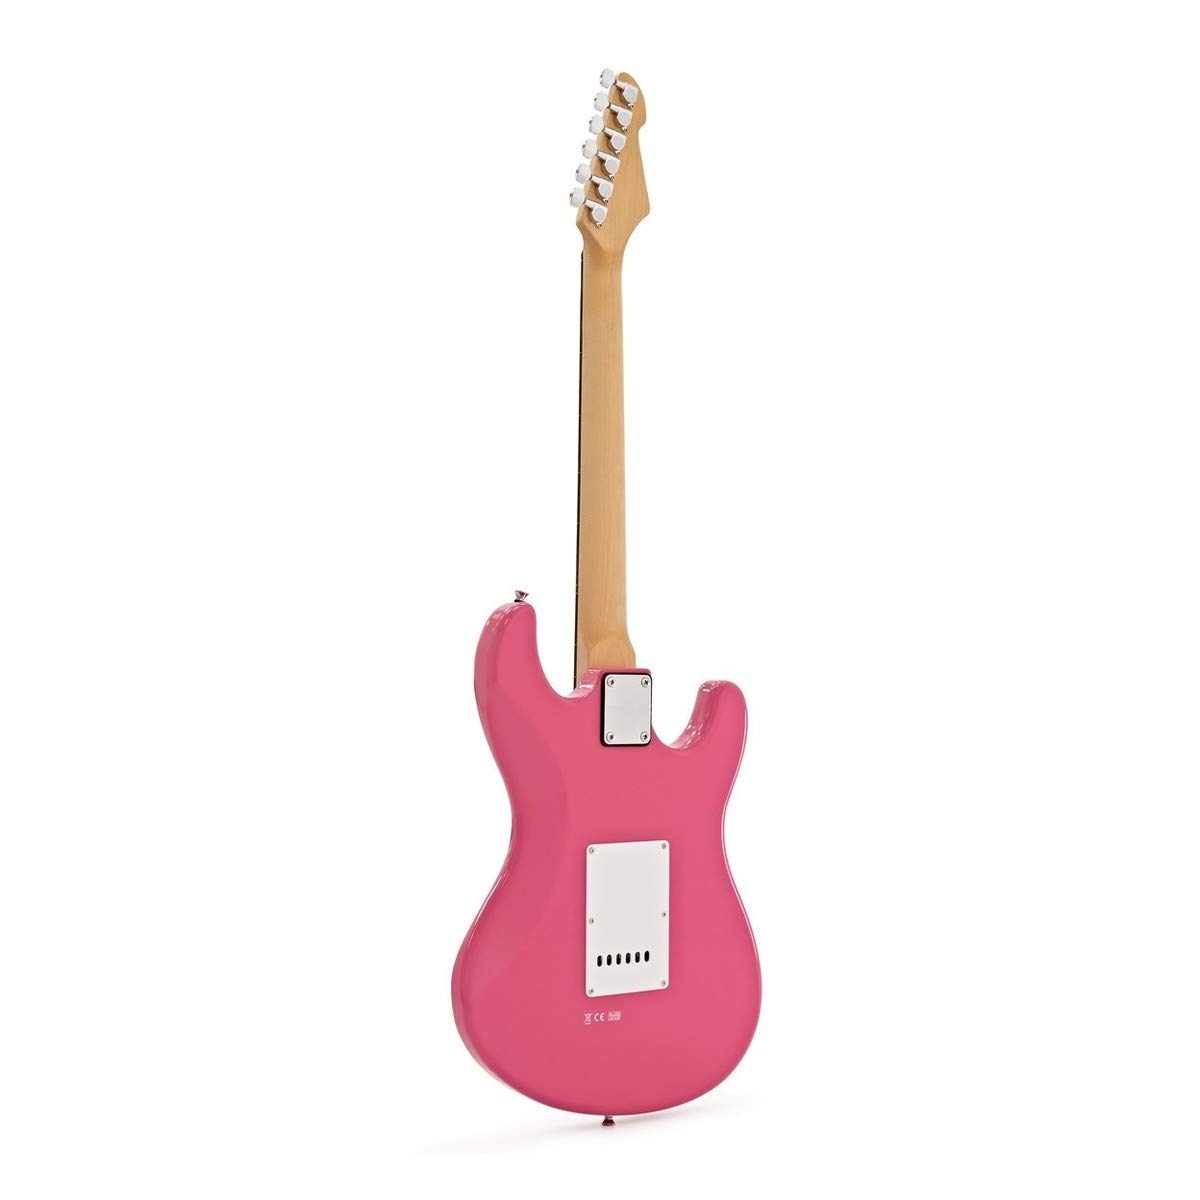 LA Left Handed Electric Guitar by Gear4music Pink + Complete Pack: Amazon.es: Instrumentos musicales